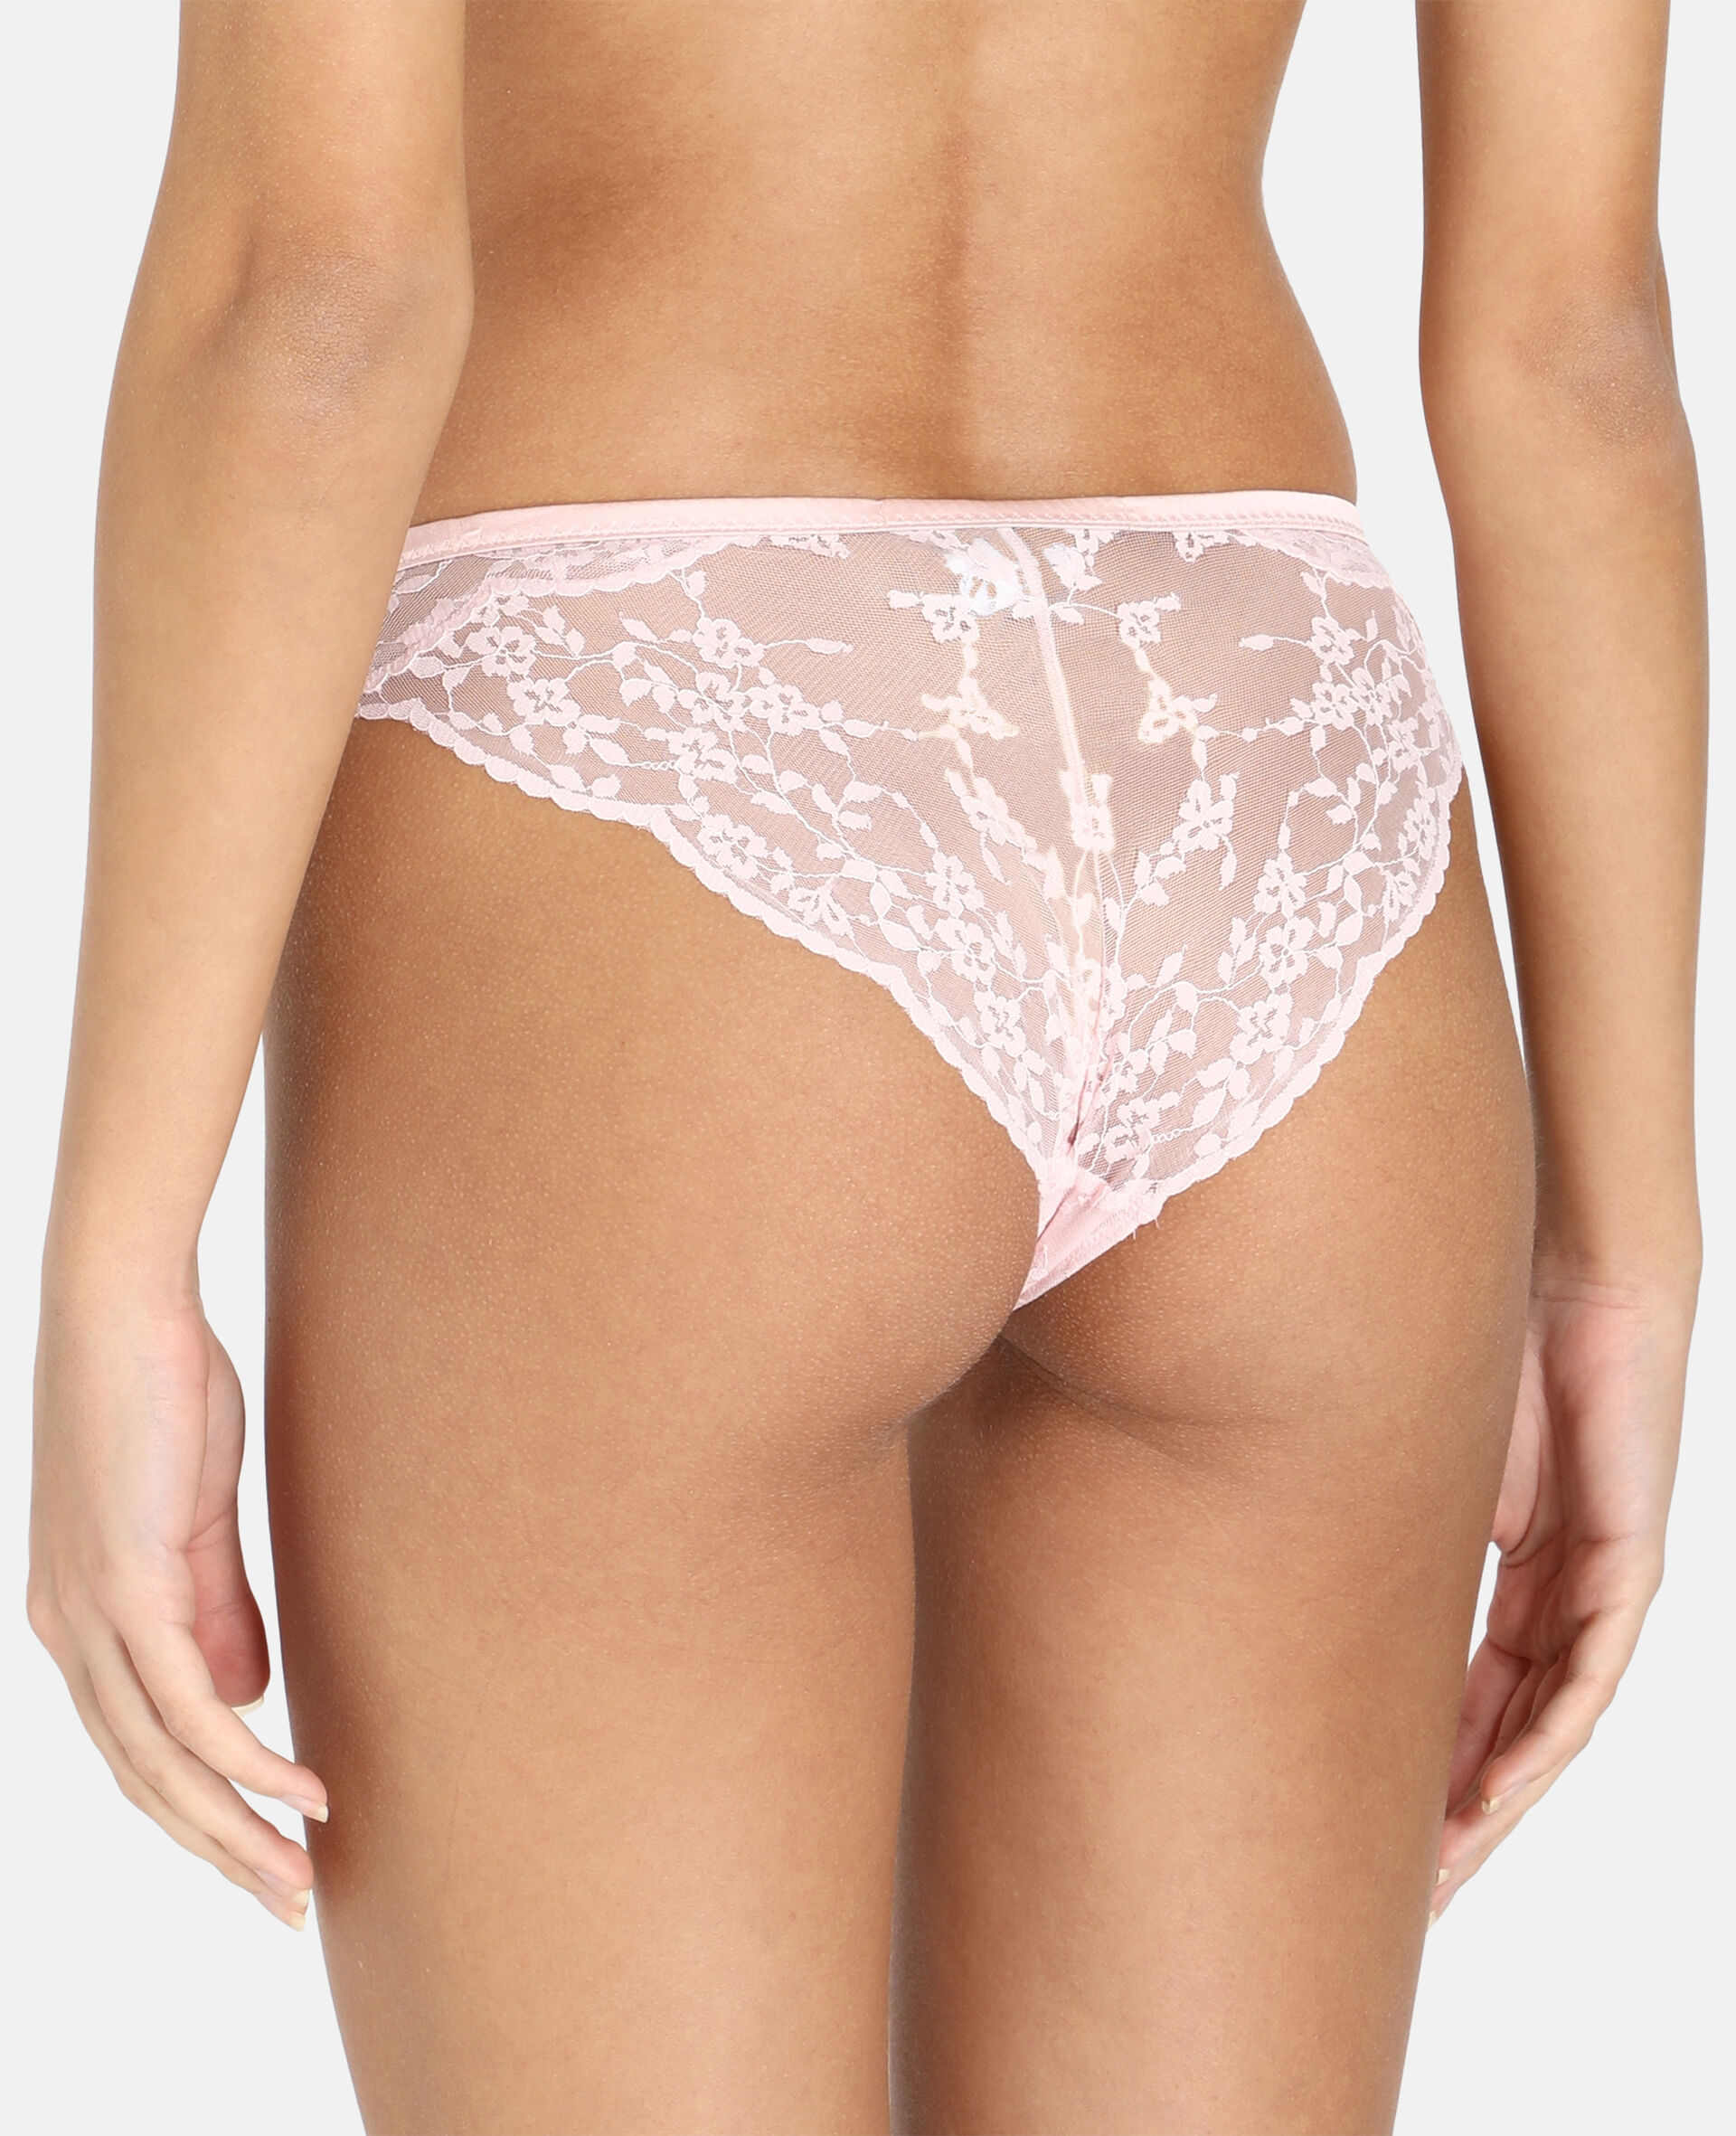 Clementine Glancing Briefs-Black-large image number 2